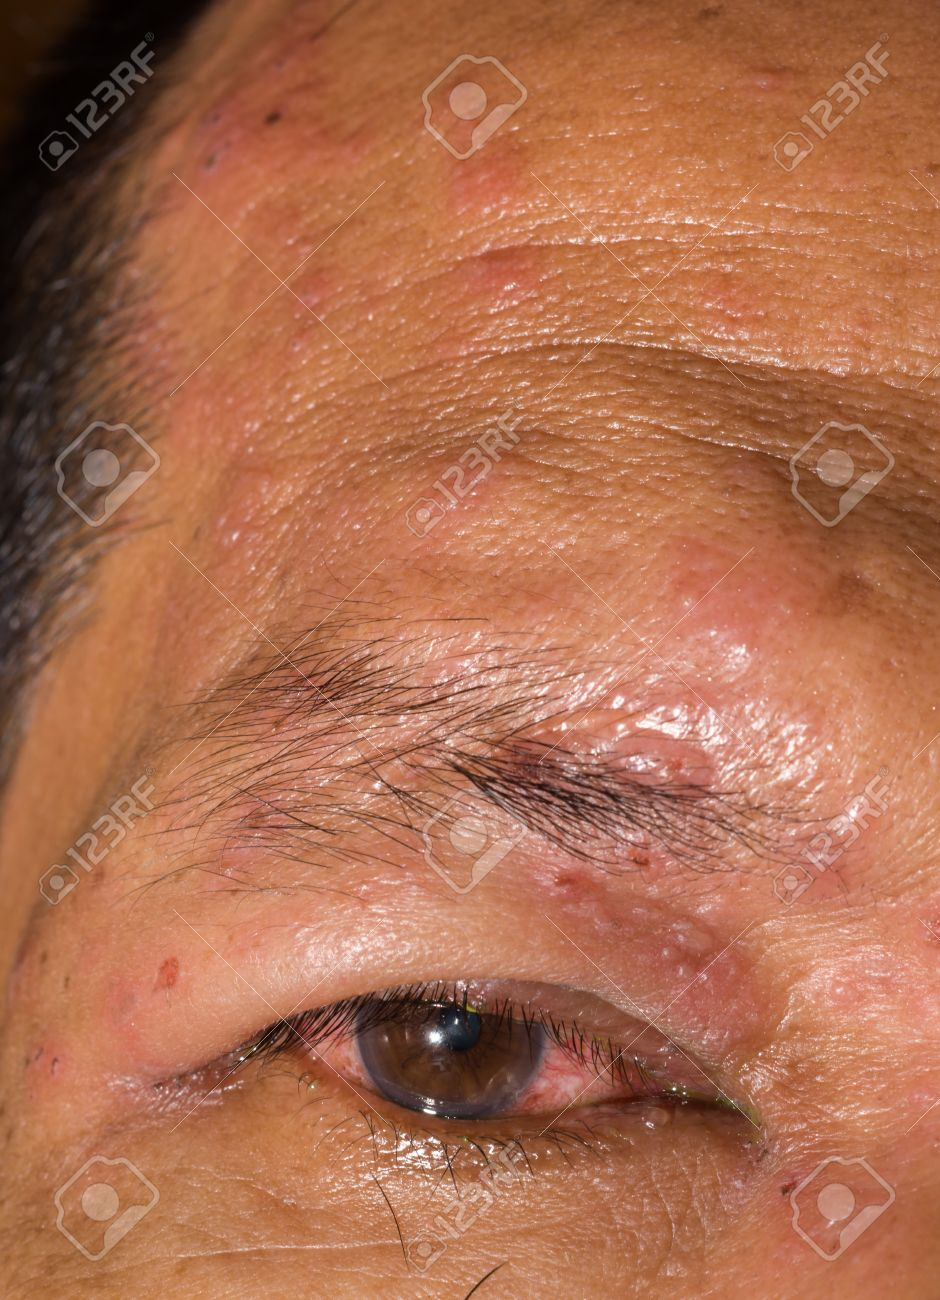 Close Up Of The Herpes Zoster Ophthalmicus During Eye Examination Stock Photo Picture And Royalty Free Image Image 44342229